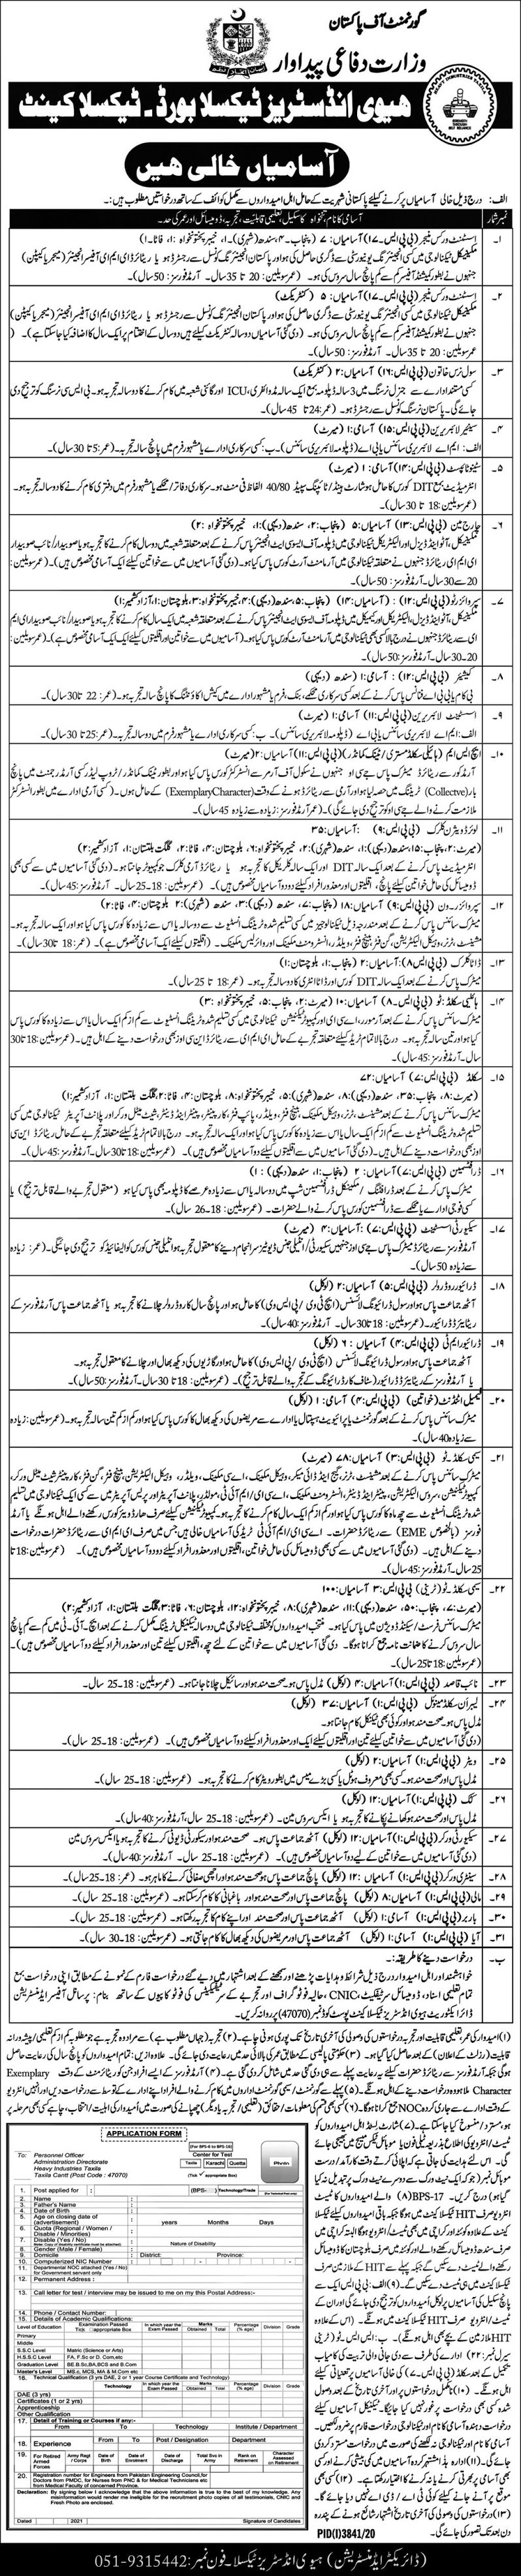 Heavy Industries Taxila HIT Jobs 2021 in Pakistan - Download HIT Jobs 2021 Application Form - Latest Govt Jobs 2021